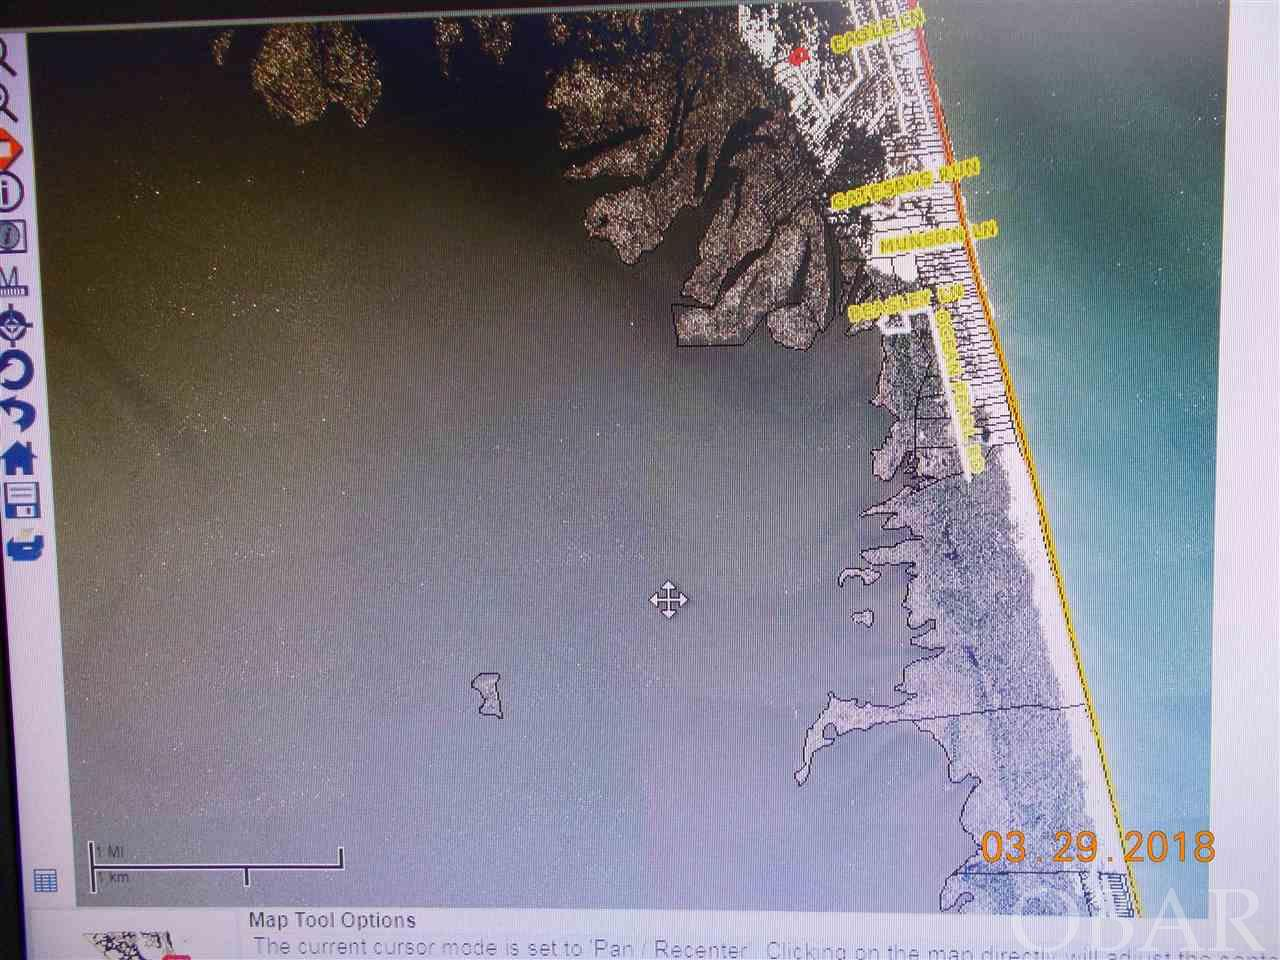 0 Hidden Dune Lane, Corolla, NC 27927, ,Lots/land,For sale,Hidden Dune Lane,99856